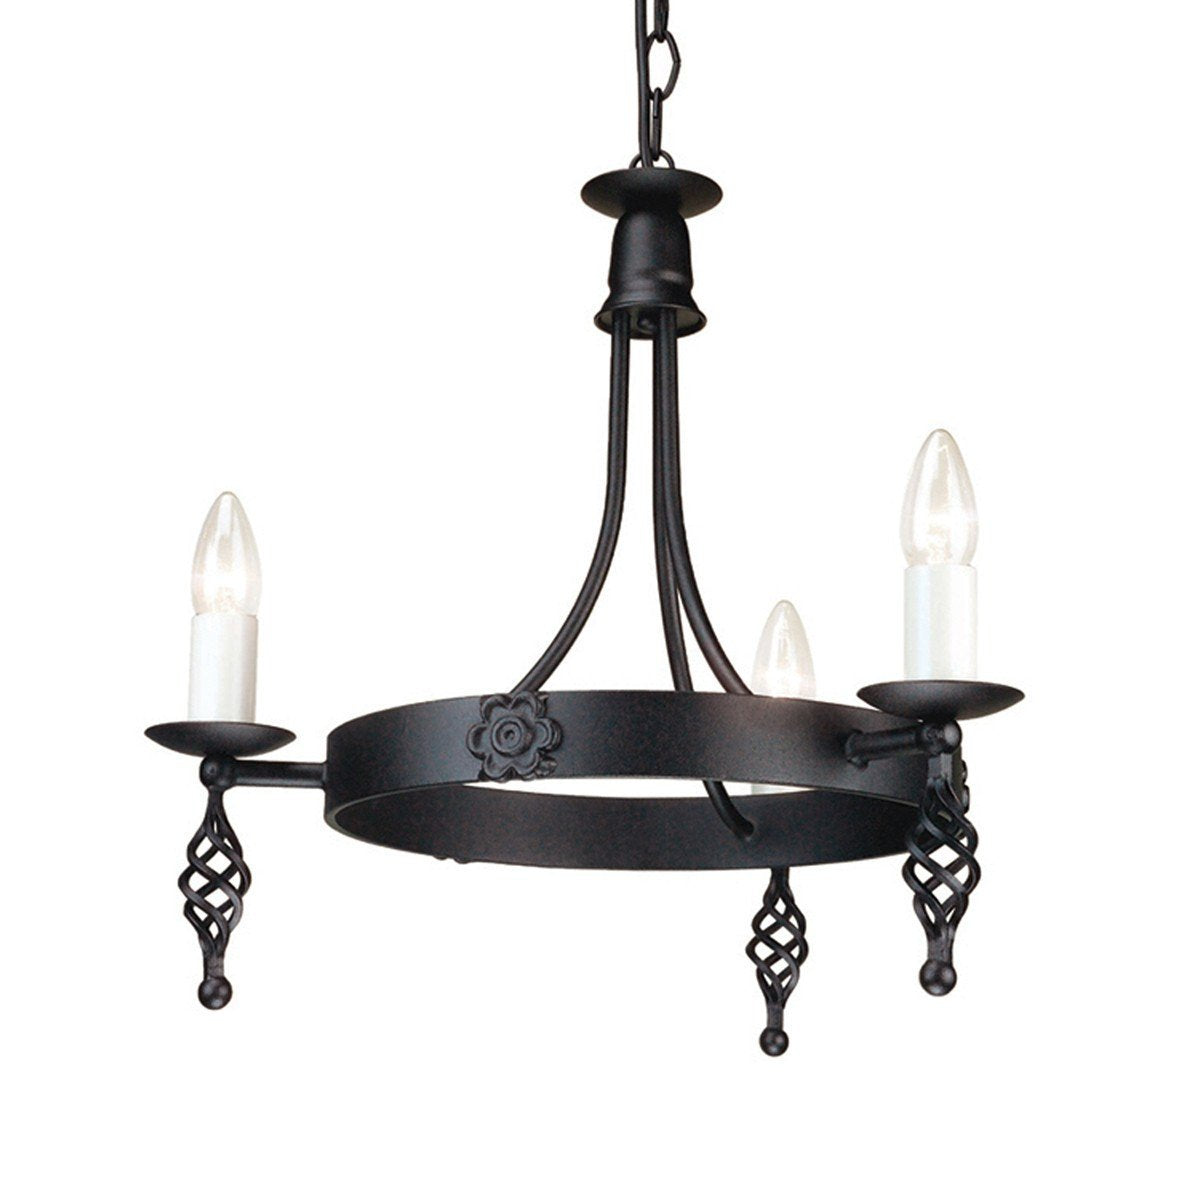 Belfry 3 Arm Chandelier Black - London Lighting - 1